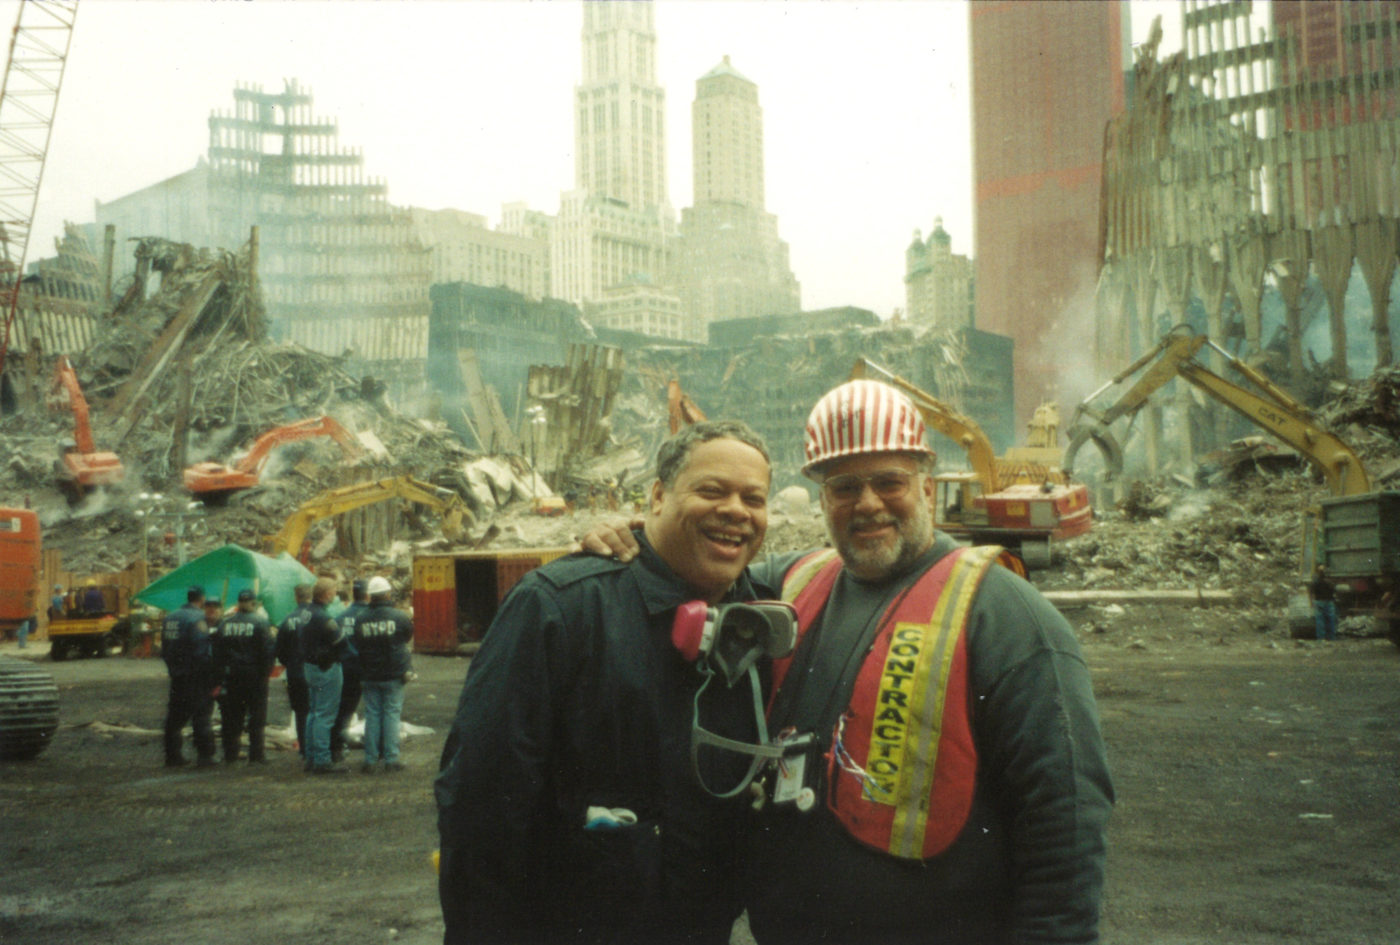 Two Unknown Workers Take a Photo with Work in the Backgroudn and a Group of NYPD Officers Standing in the Back